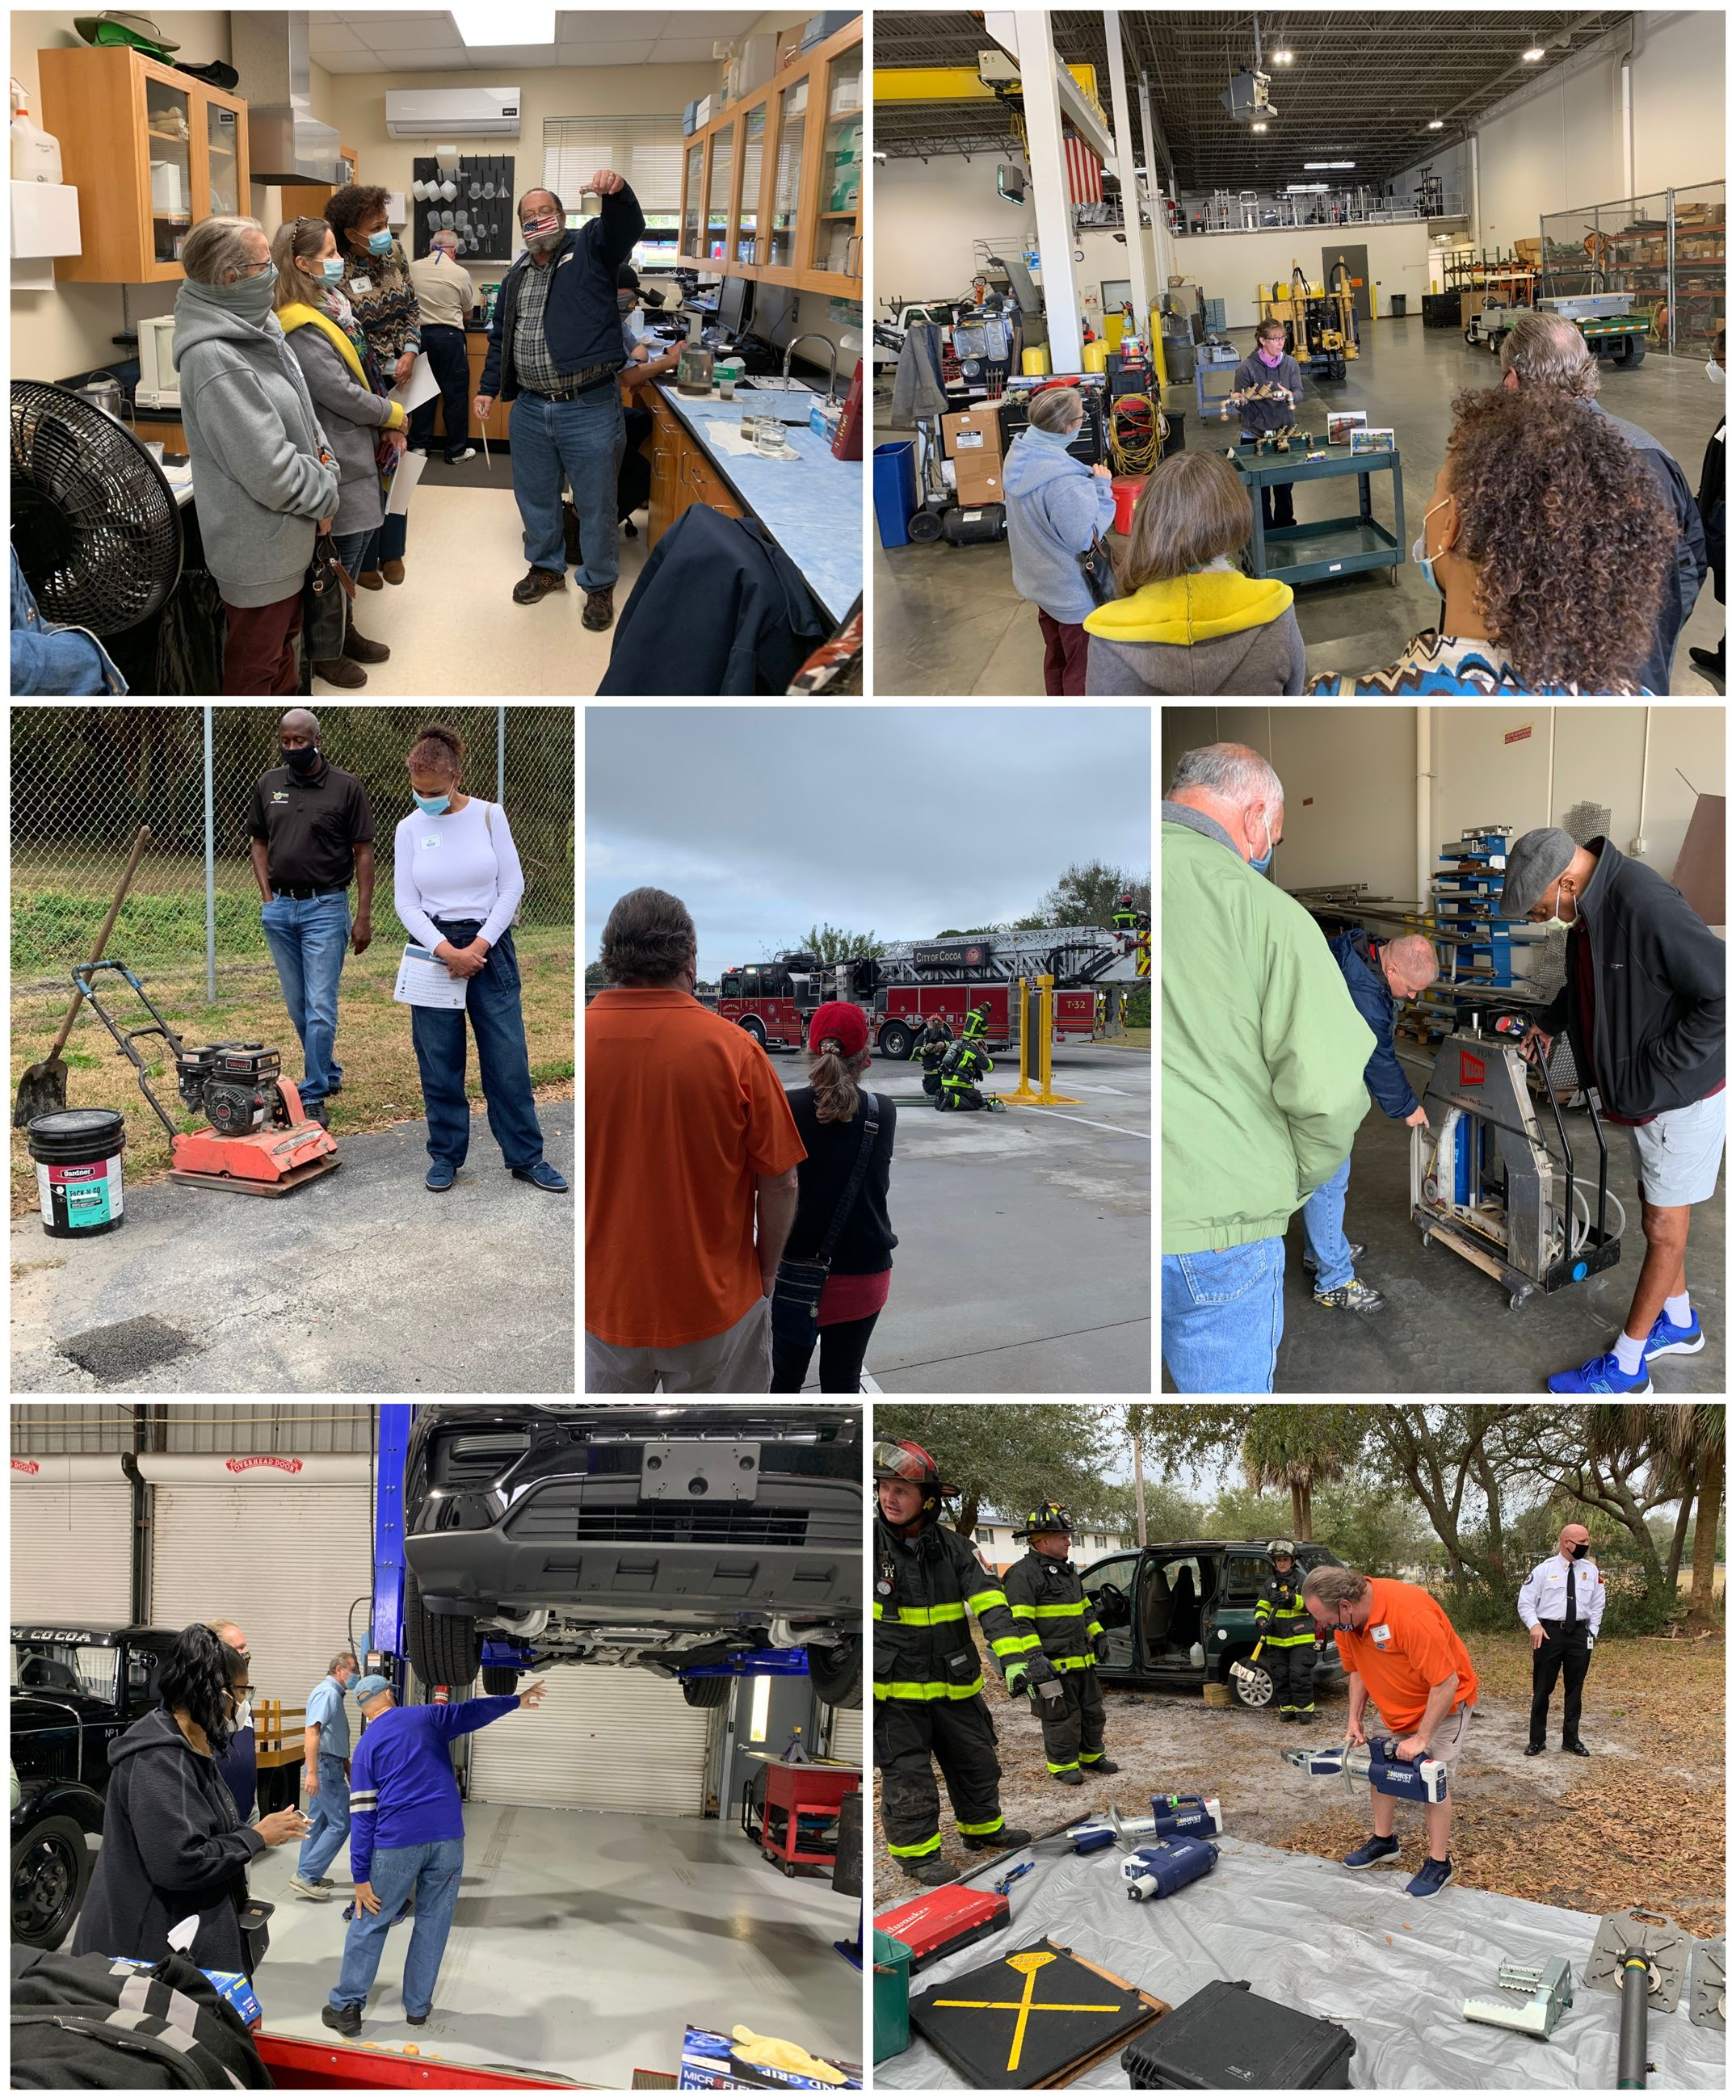 Citizens Academy photos at various city locations